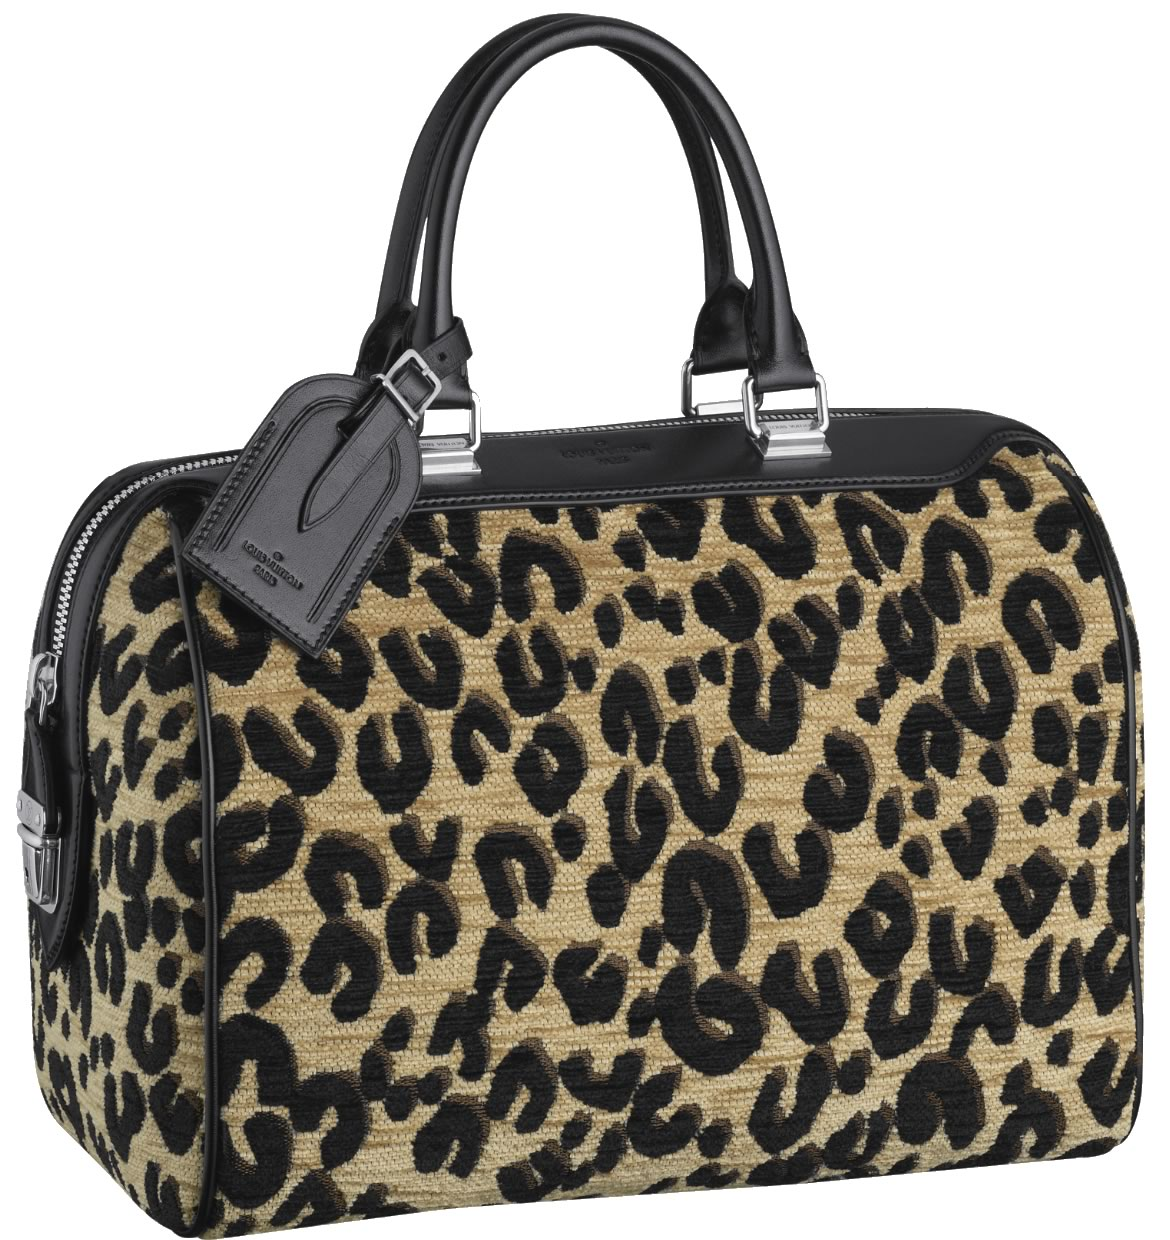 Louis Vuitton Leopard Speedy Bag Replica